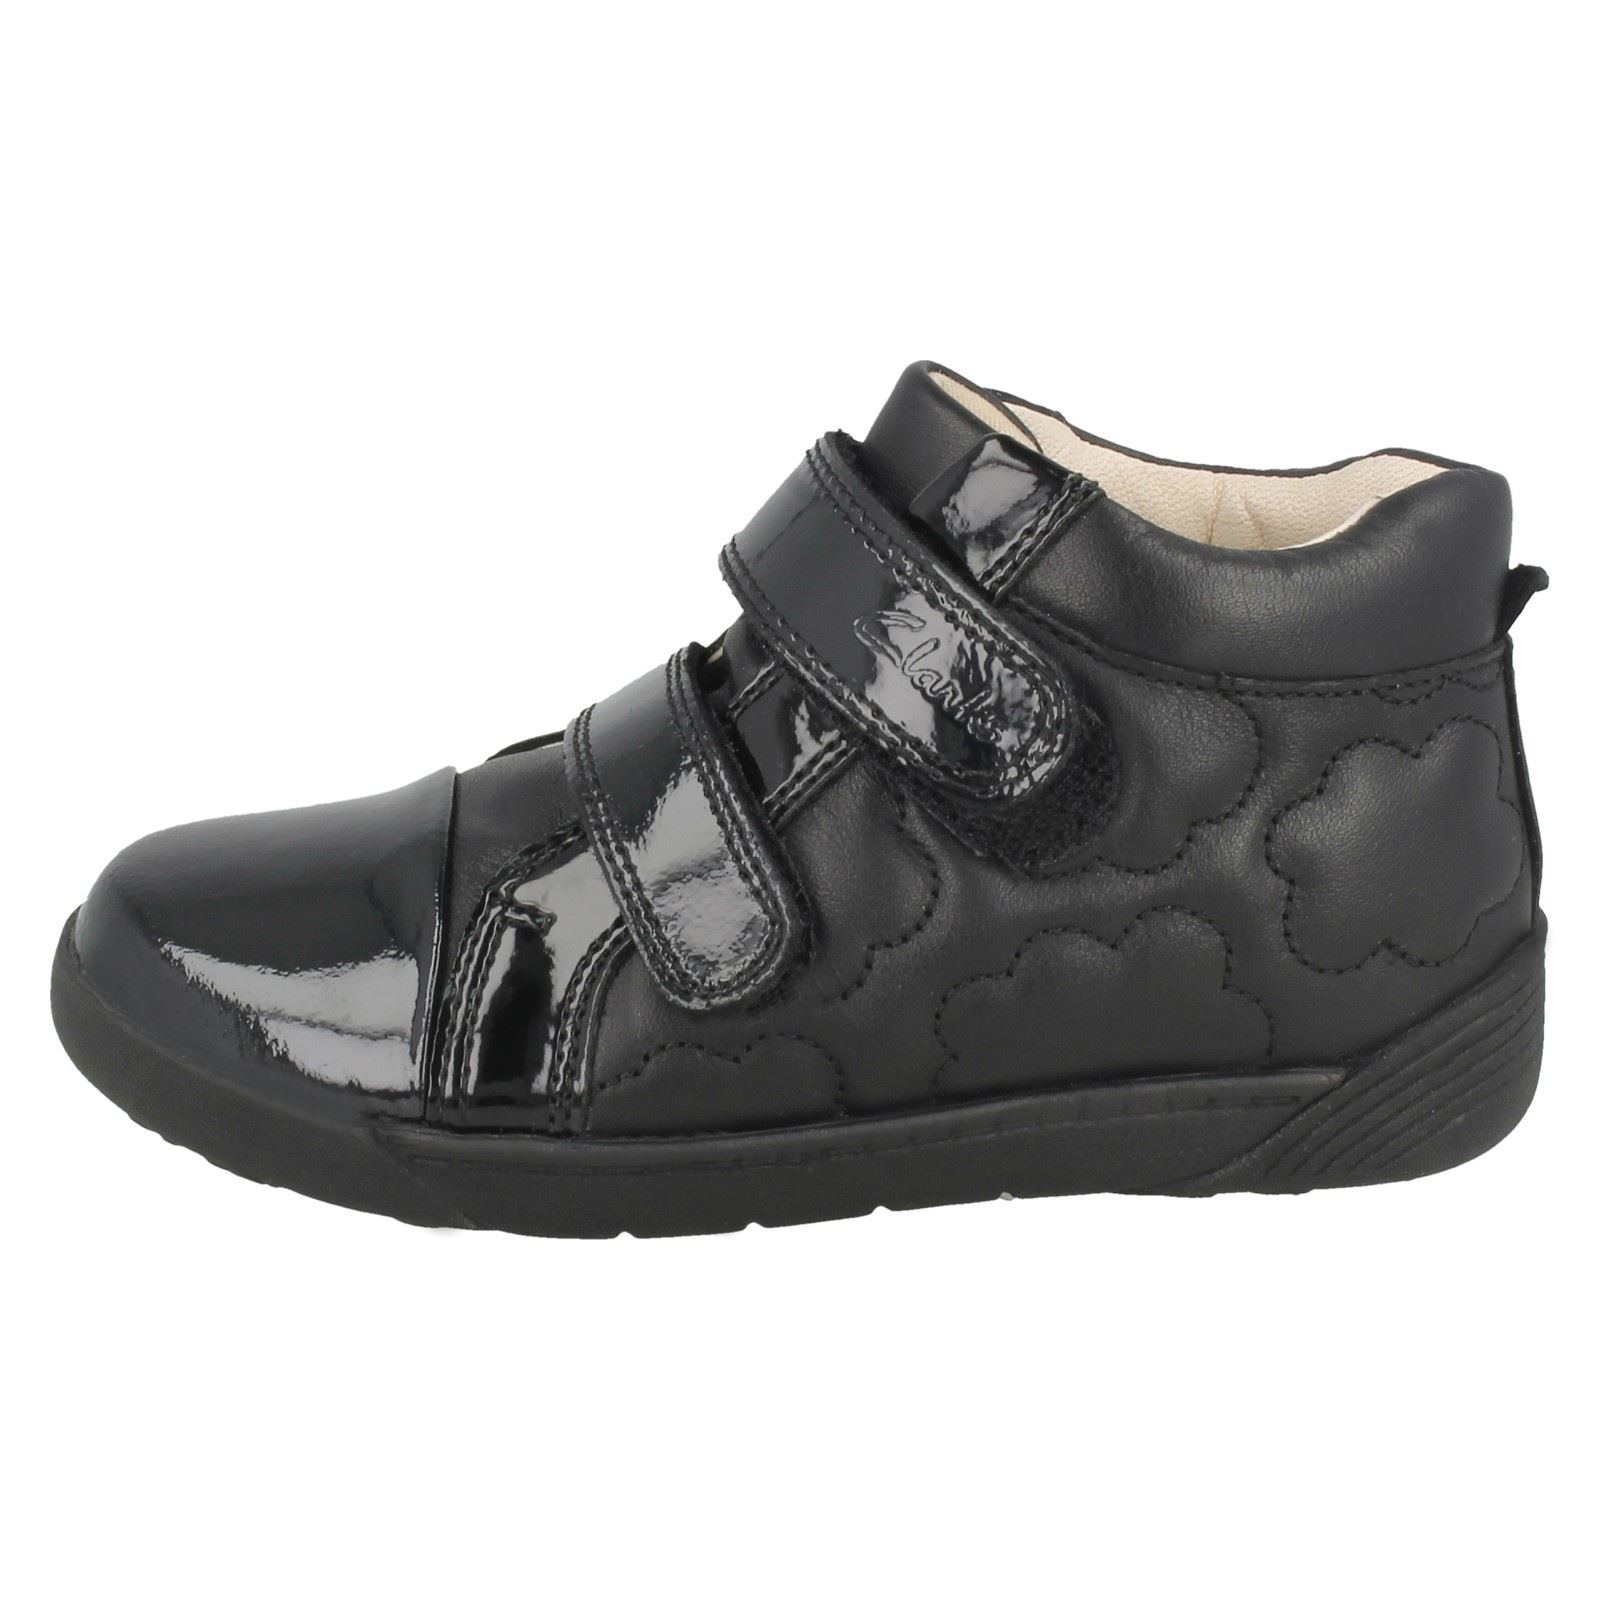 Infant-Girls-Clarks-Hook-amp-Loop-Leather-Patent-